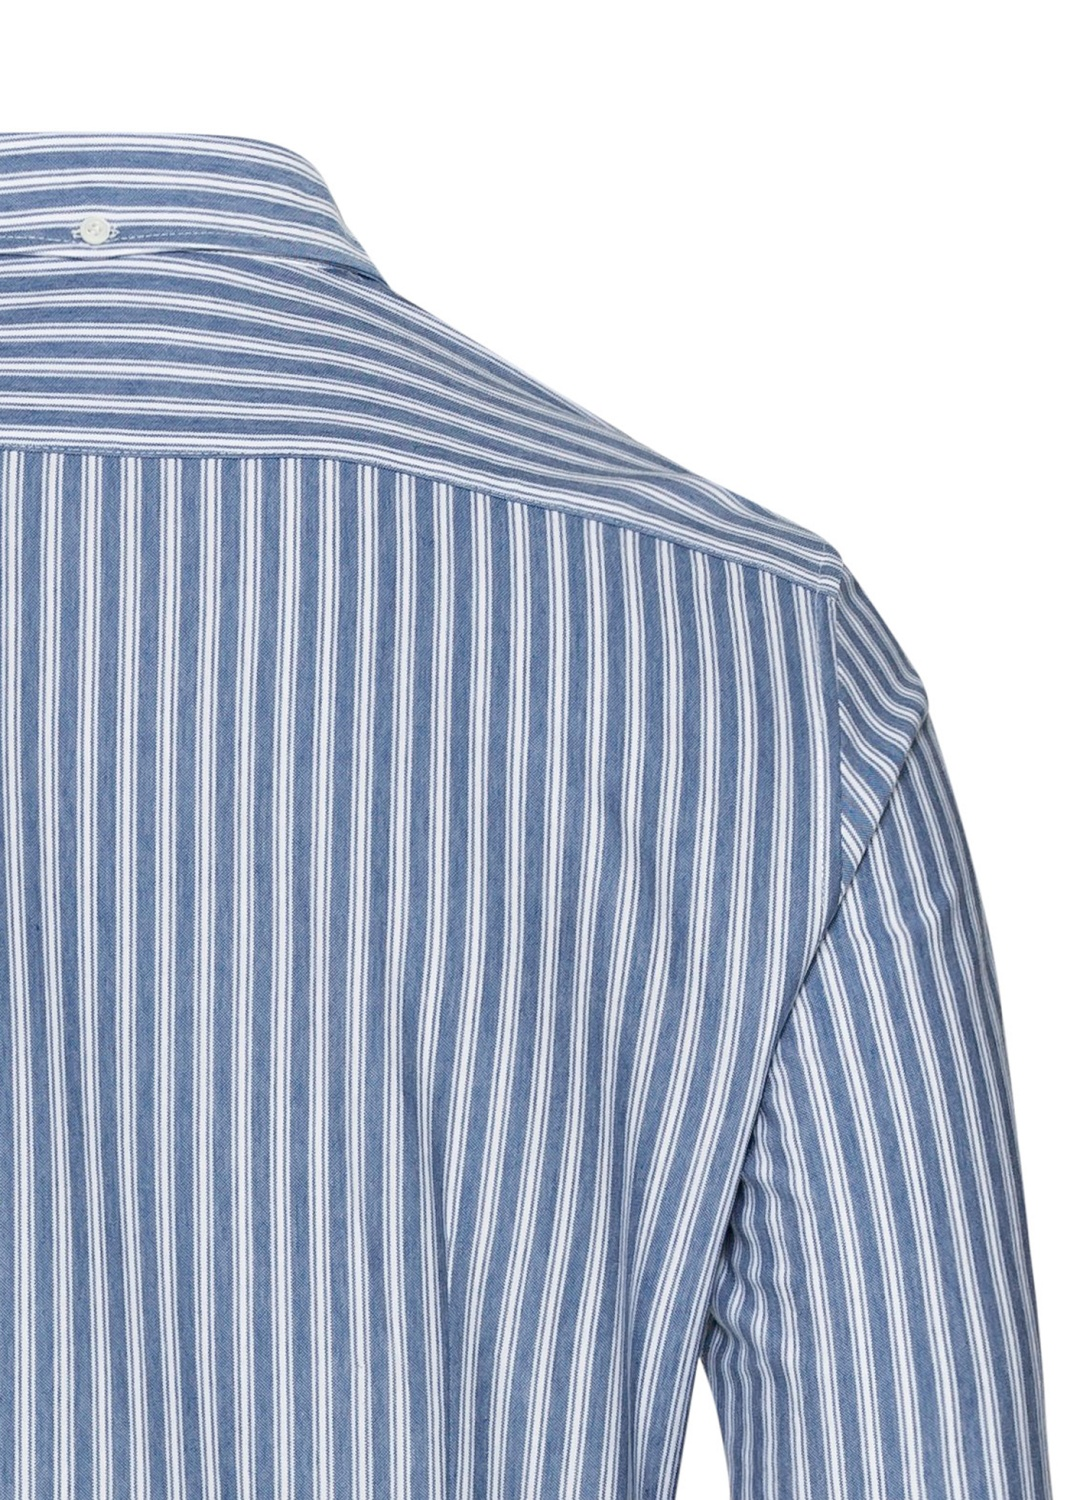 Cotton Jersey Striped Shirt image number 3